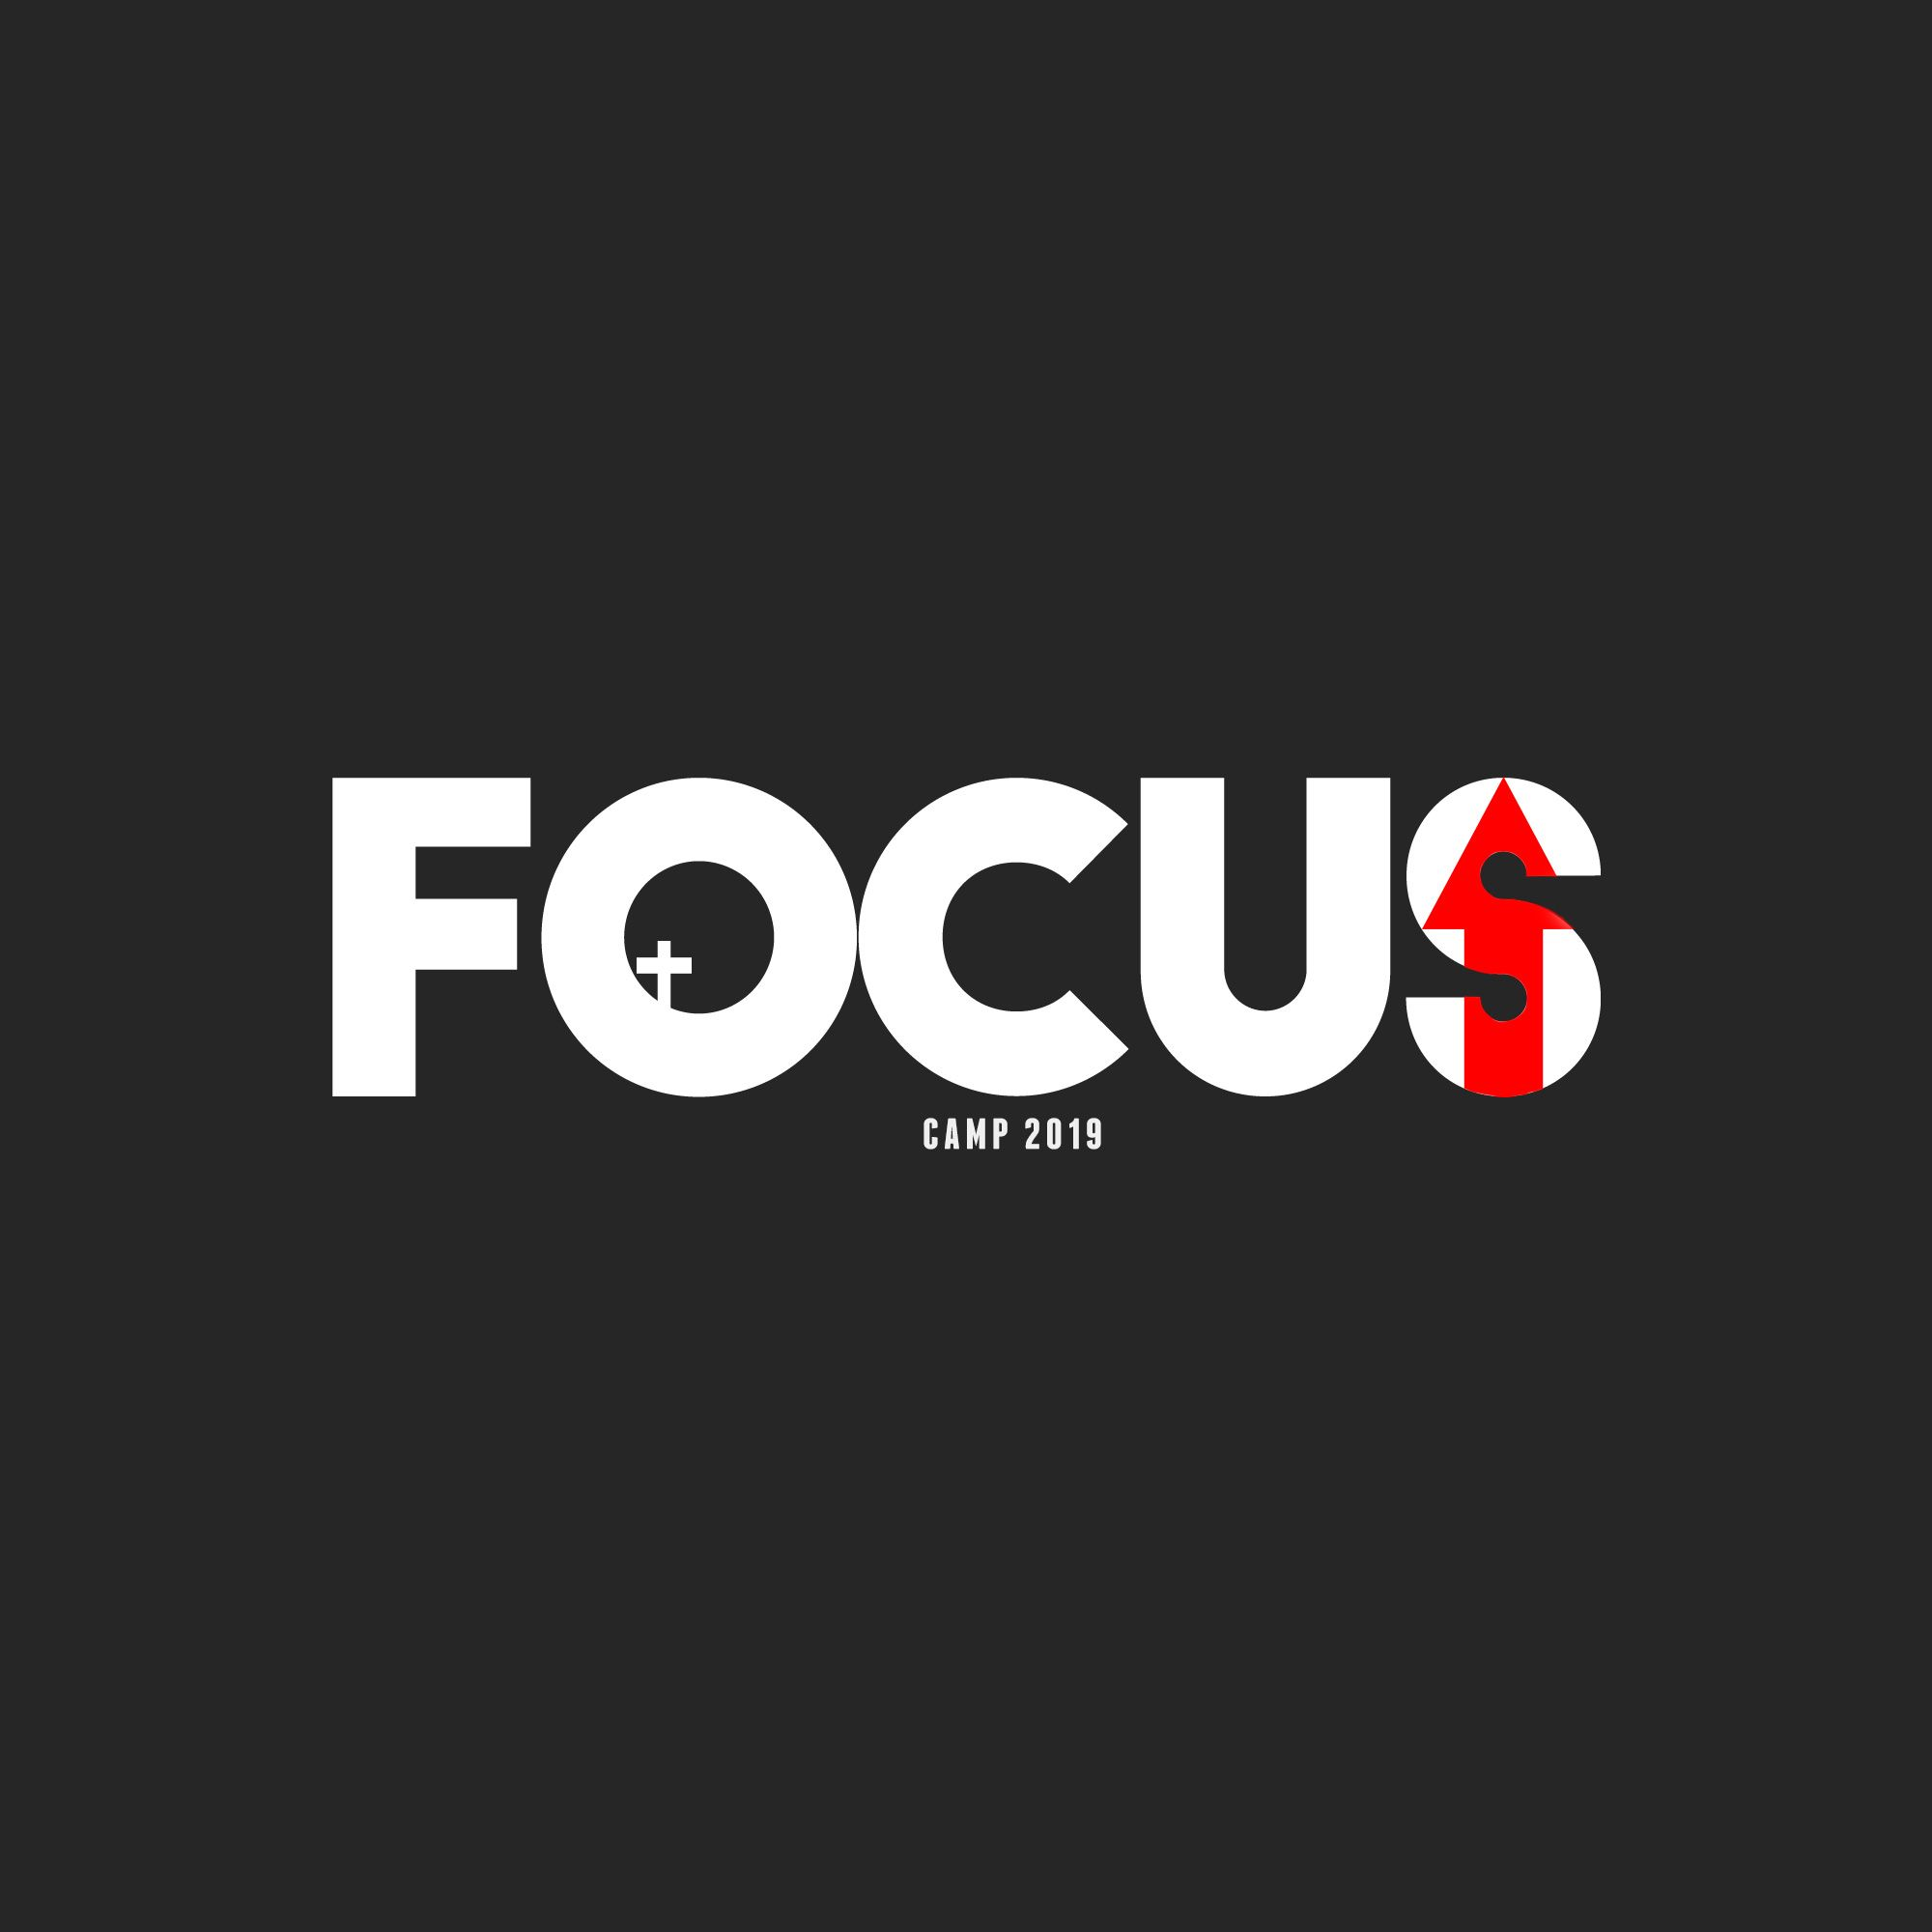 FOCUS UP - Camp 2019